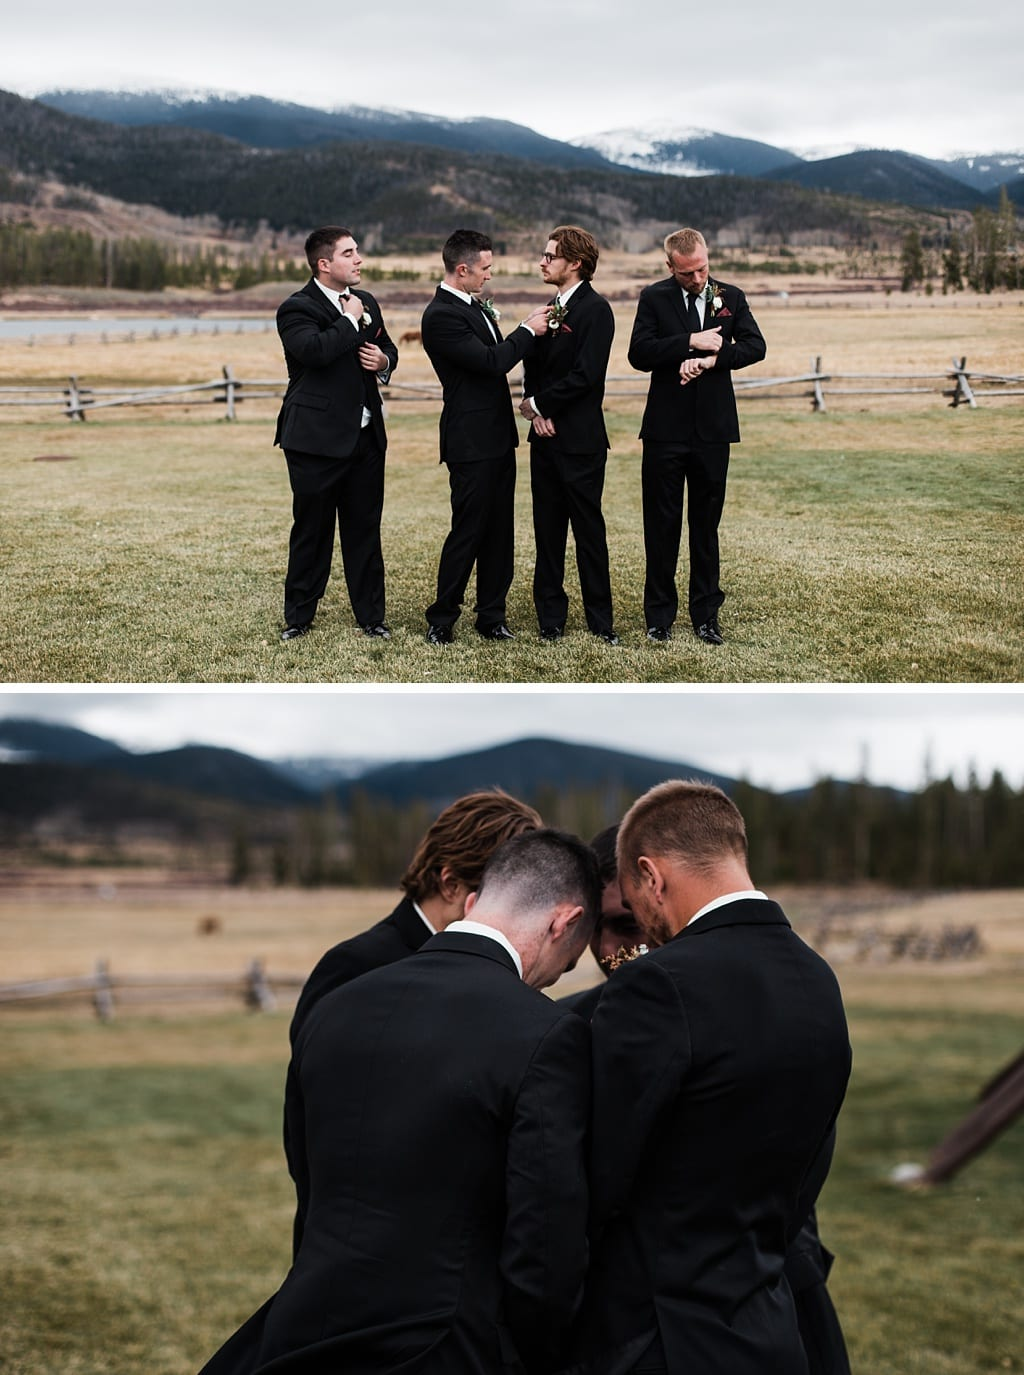 Groom with groomsmen goofing around, praying